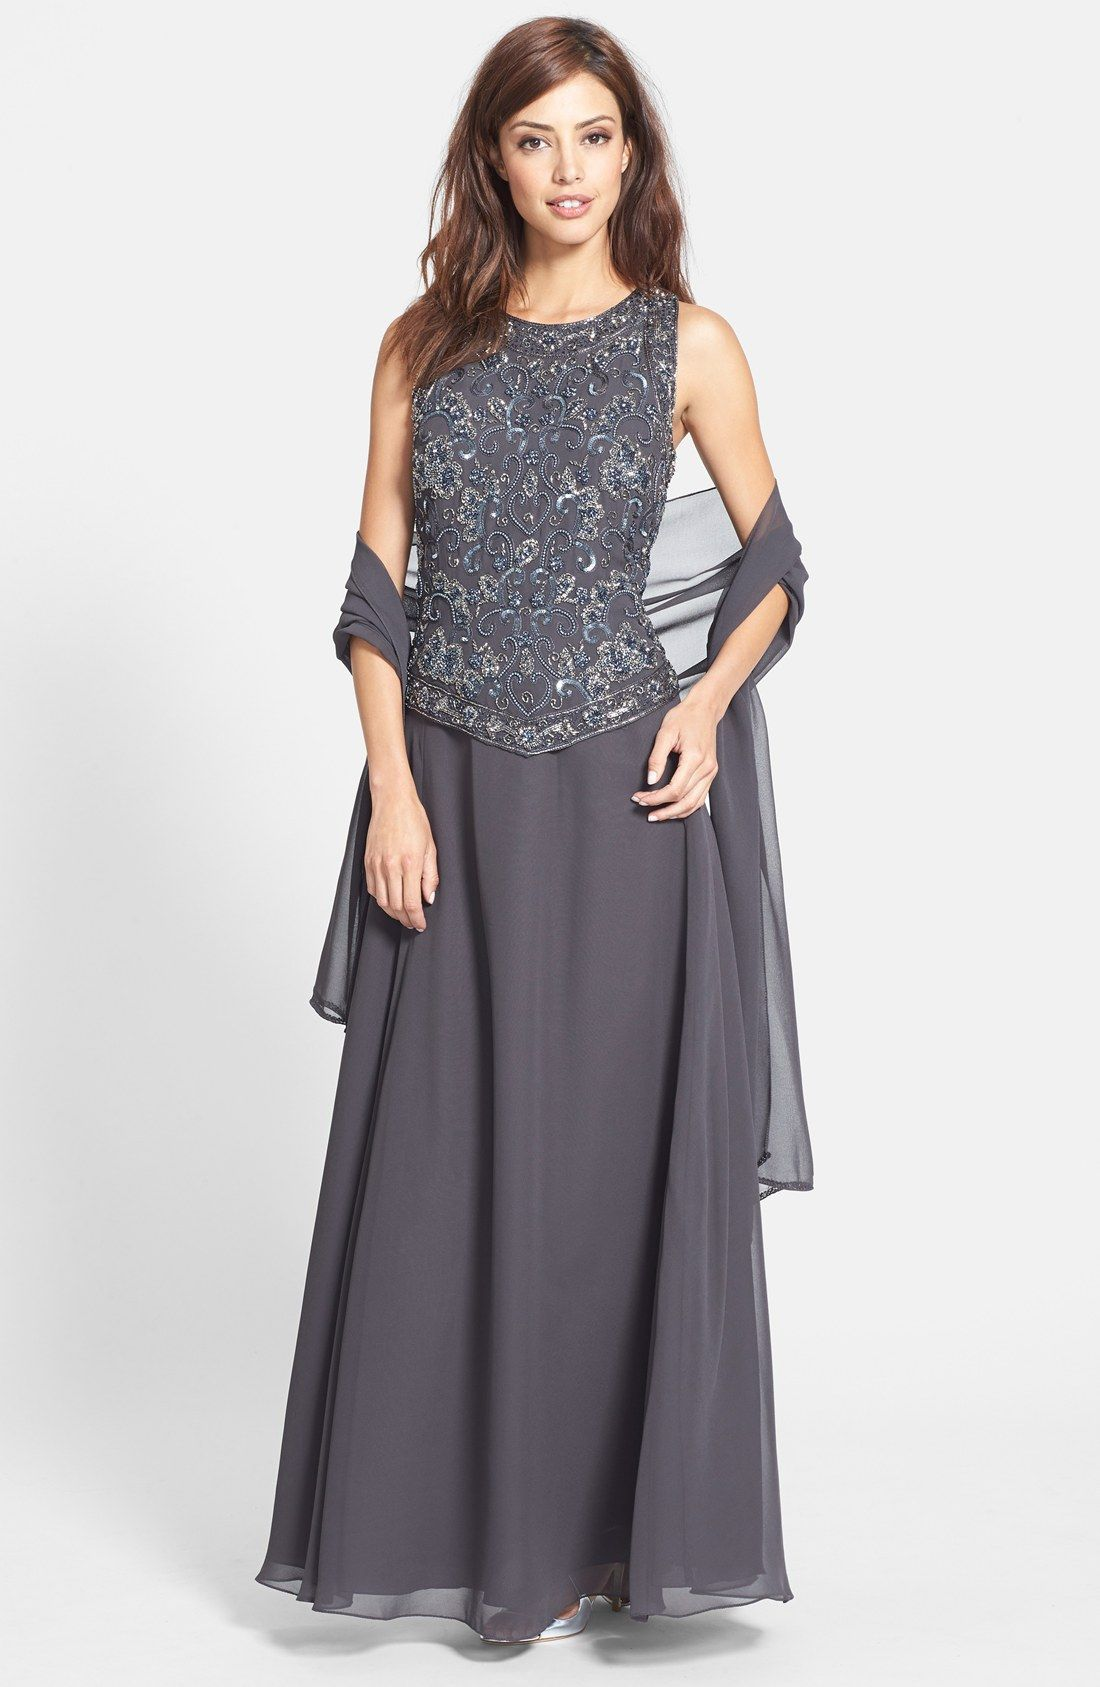 Mother of the bride dresses beach wedding  J Kara Embellished Chiffon Gown with Shawl  recipes  Pinterest